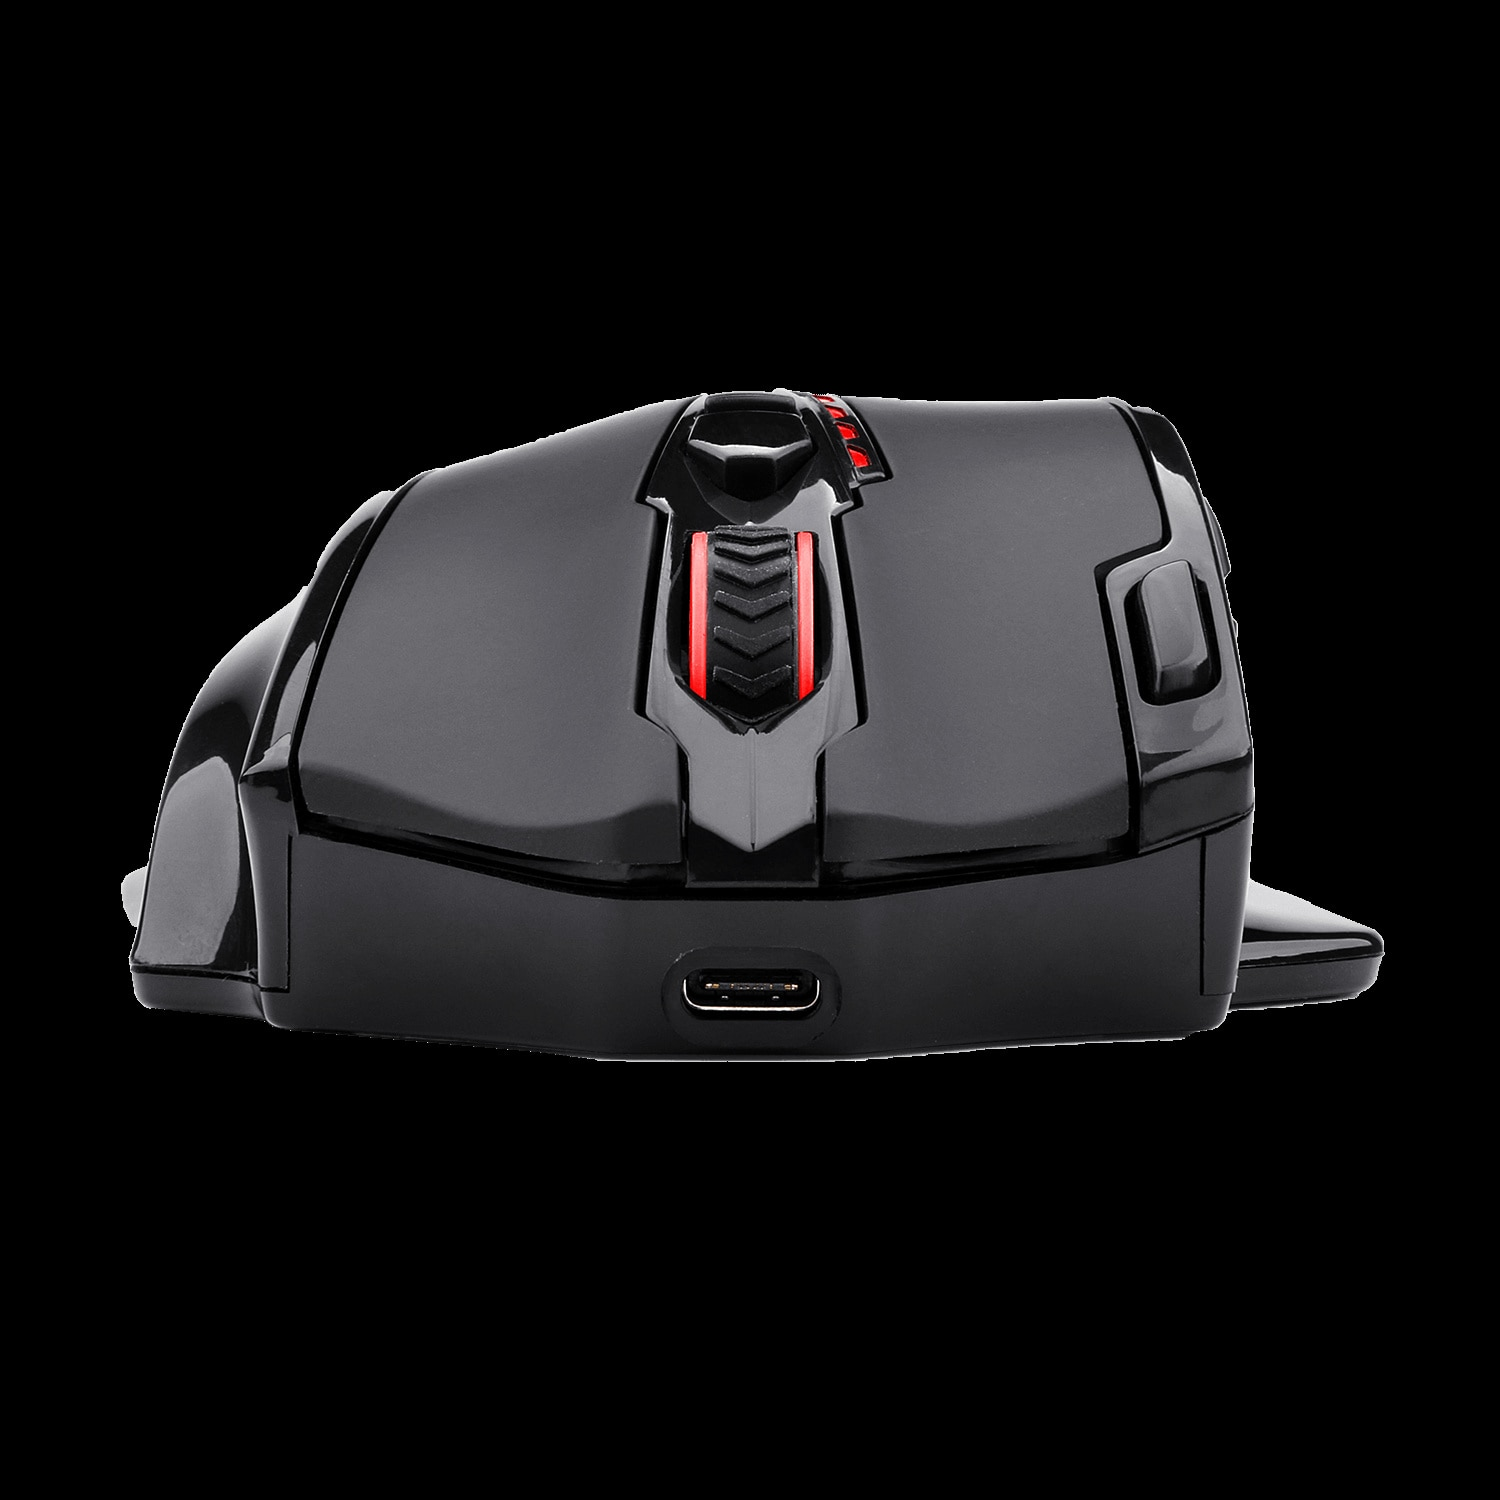 M913 2.4G Wireless Gaming Mouse 16000 DPI RGB Gaming Mouse With 16 Programmable Buttons MMO Fps For Gamer Laptop enlarge